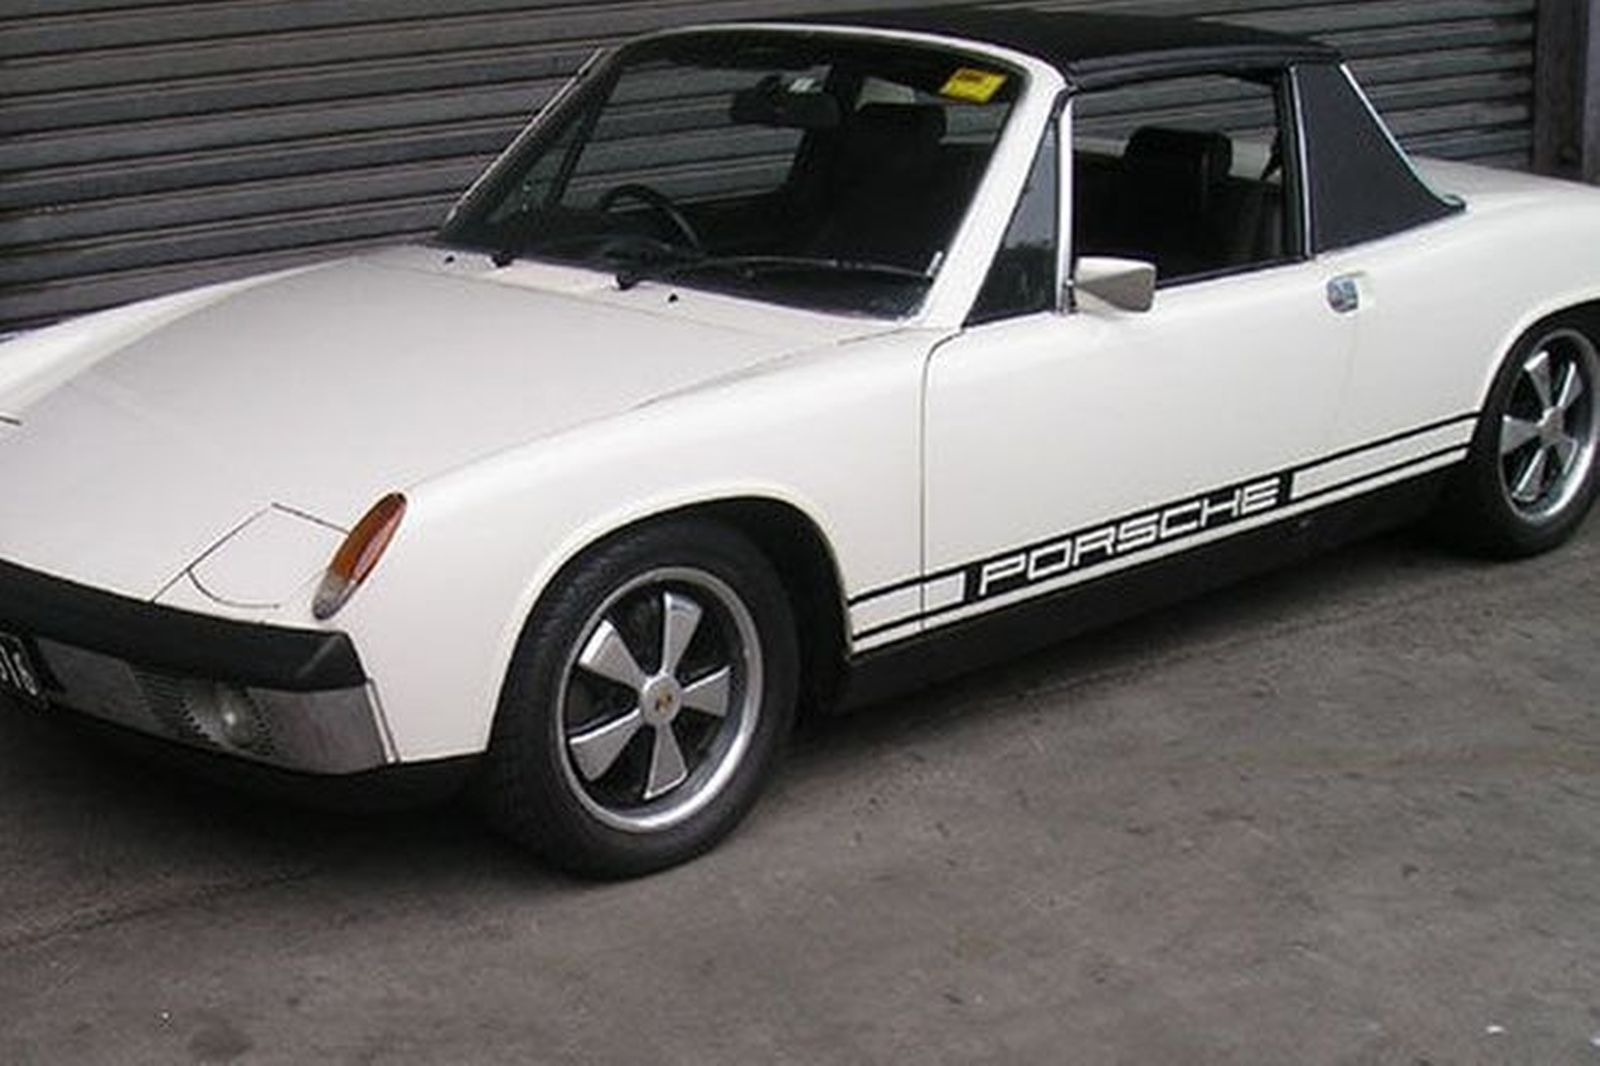 Mid America Vw >> Sold: Porsche 914/6 'Targa' Coupe (RHD) Auctions - Lot 17 ...